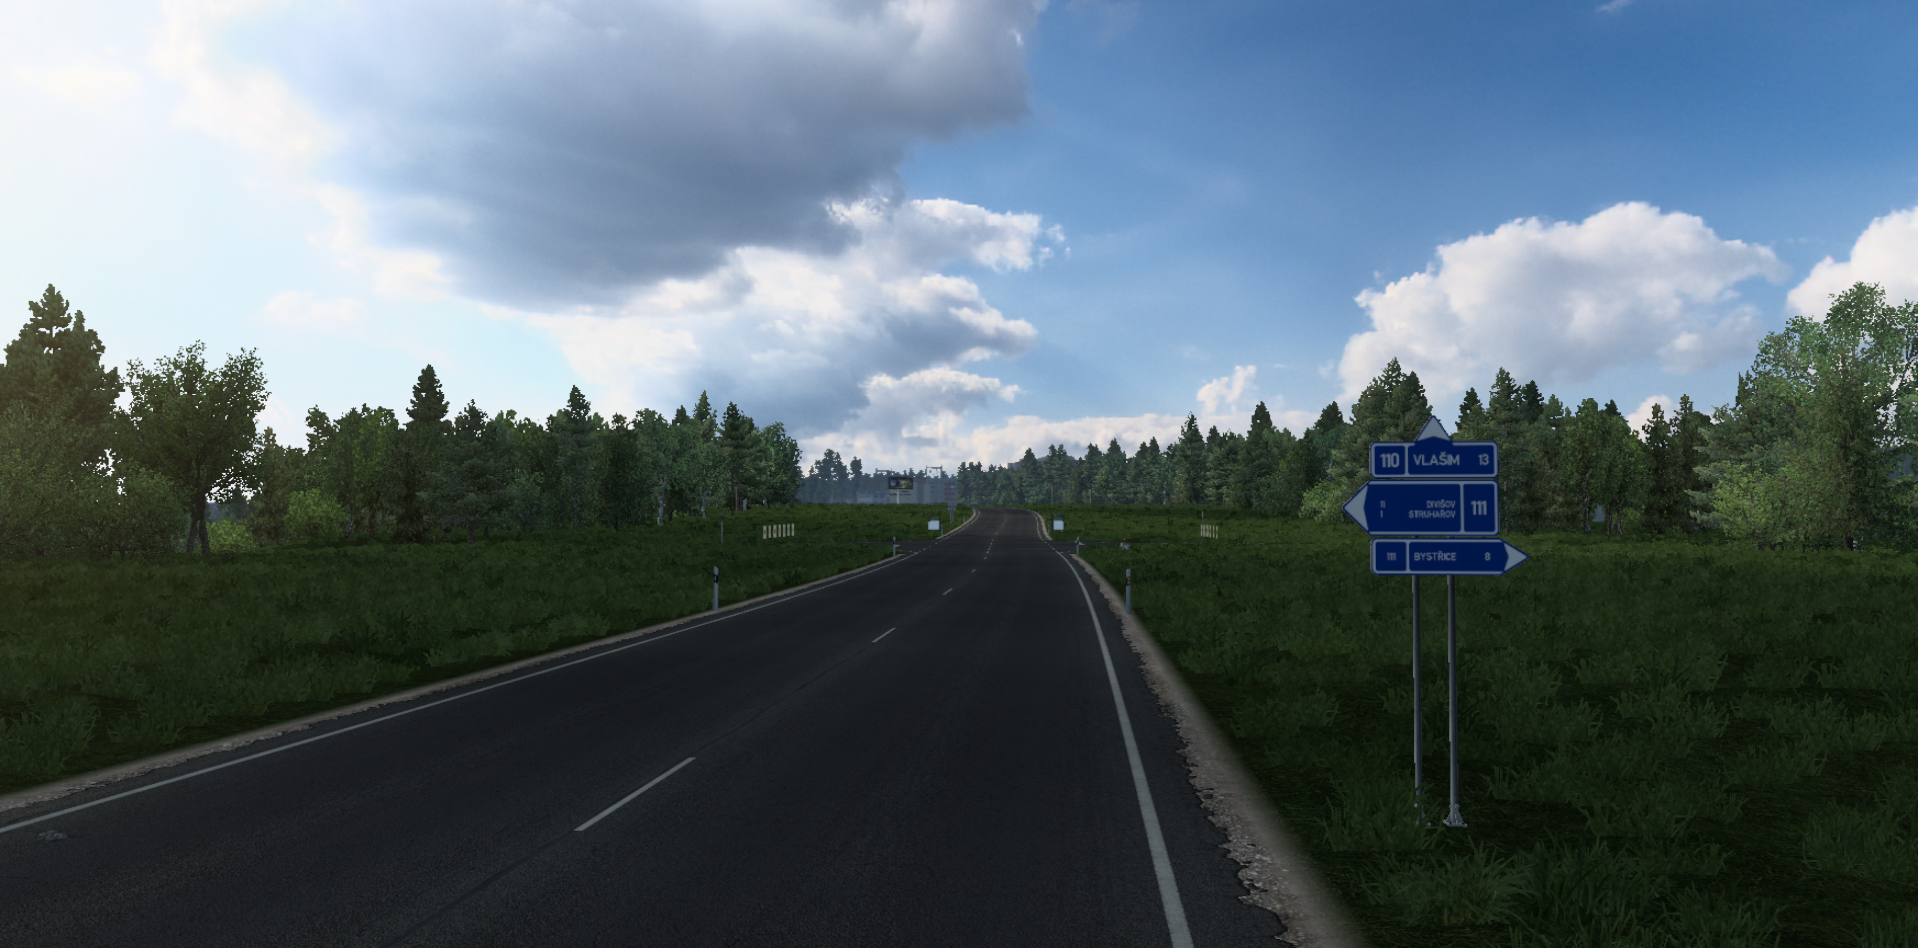 ets2_20210606_172319_00.png